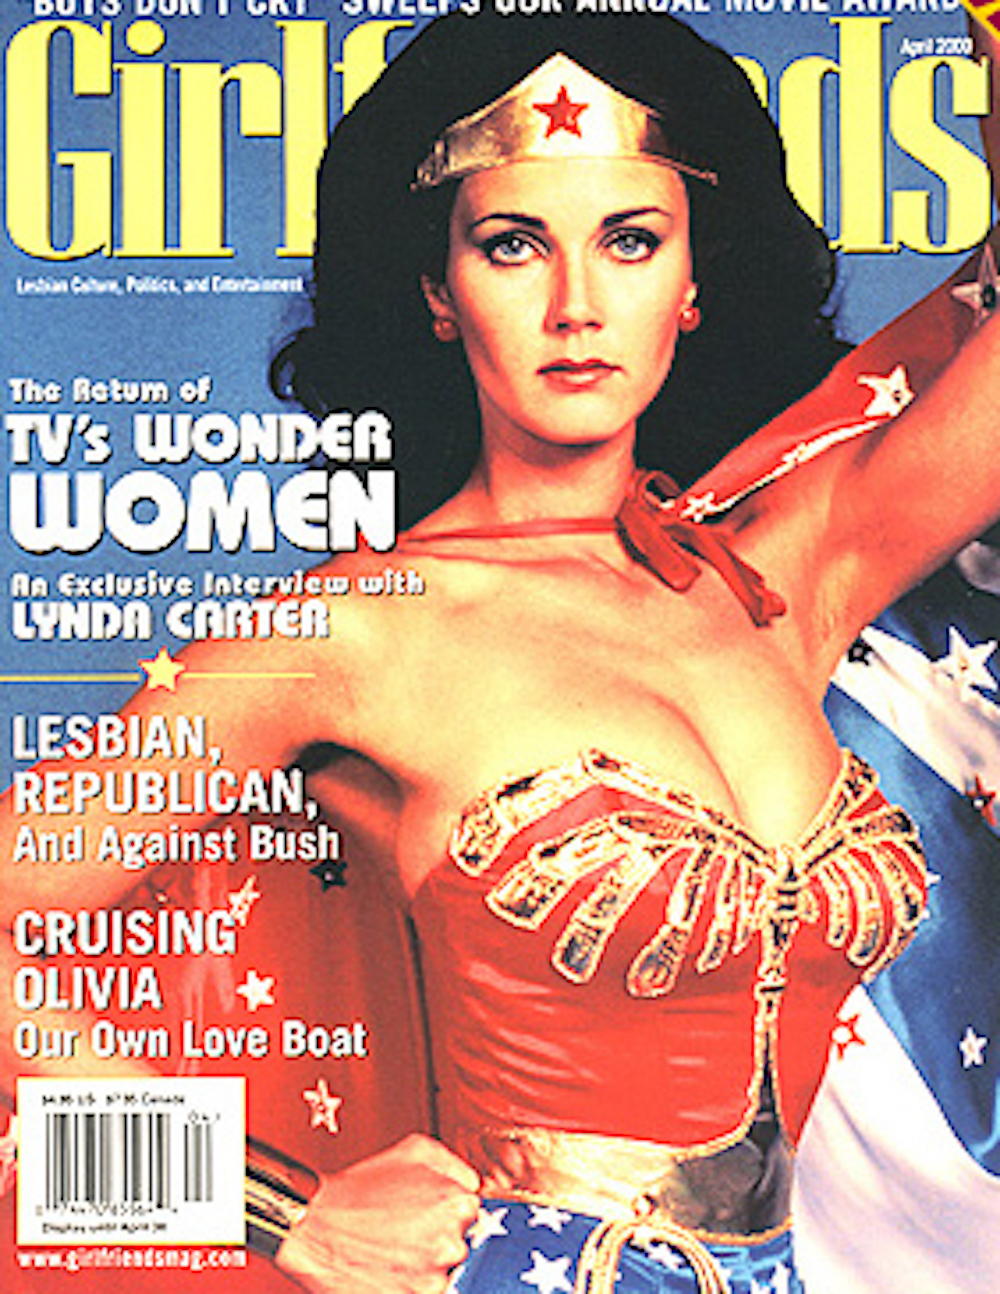 Lynda.Carter.Lesbian.Against.Bush